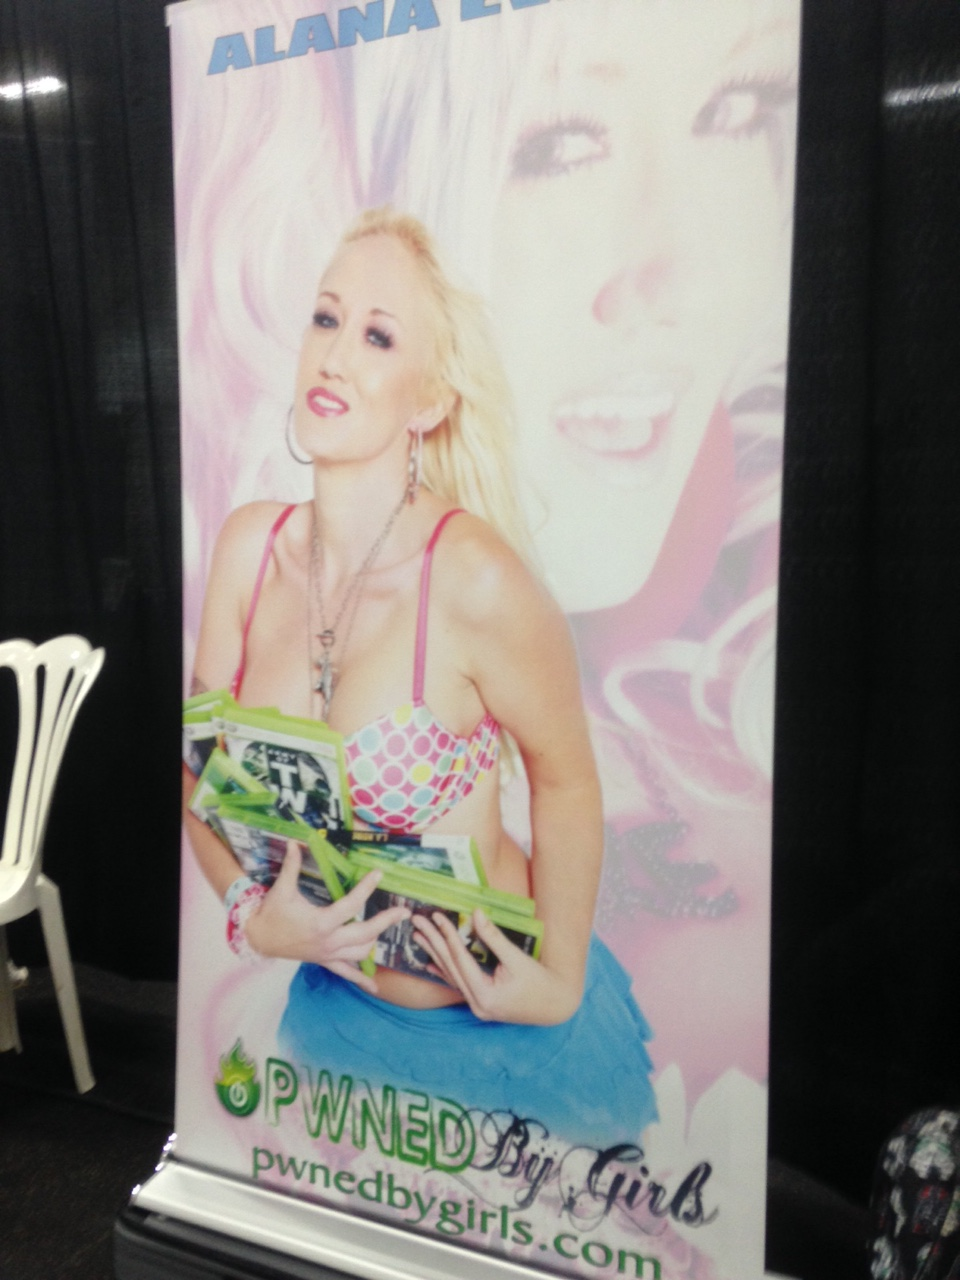 Alana's awesome banner!